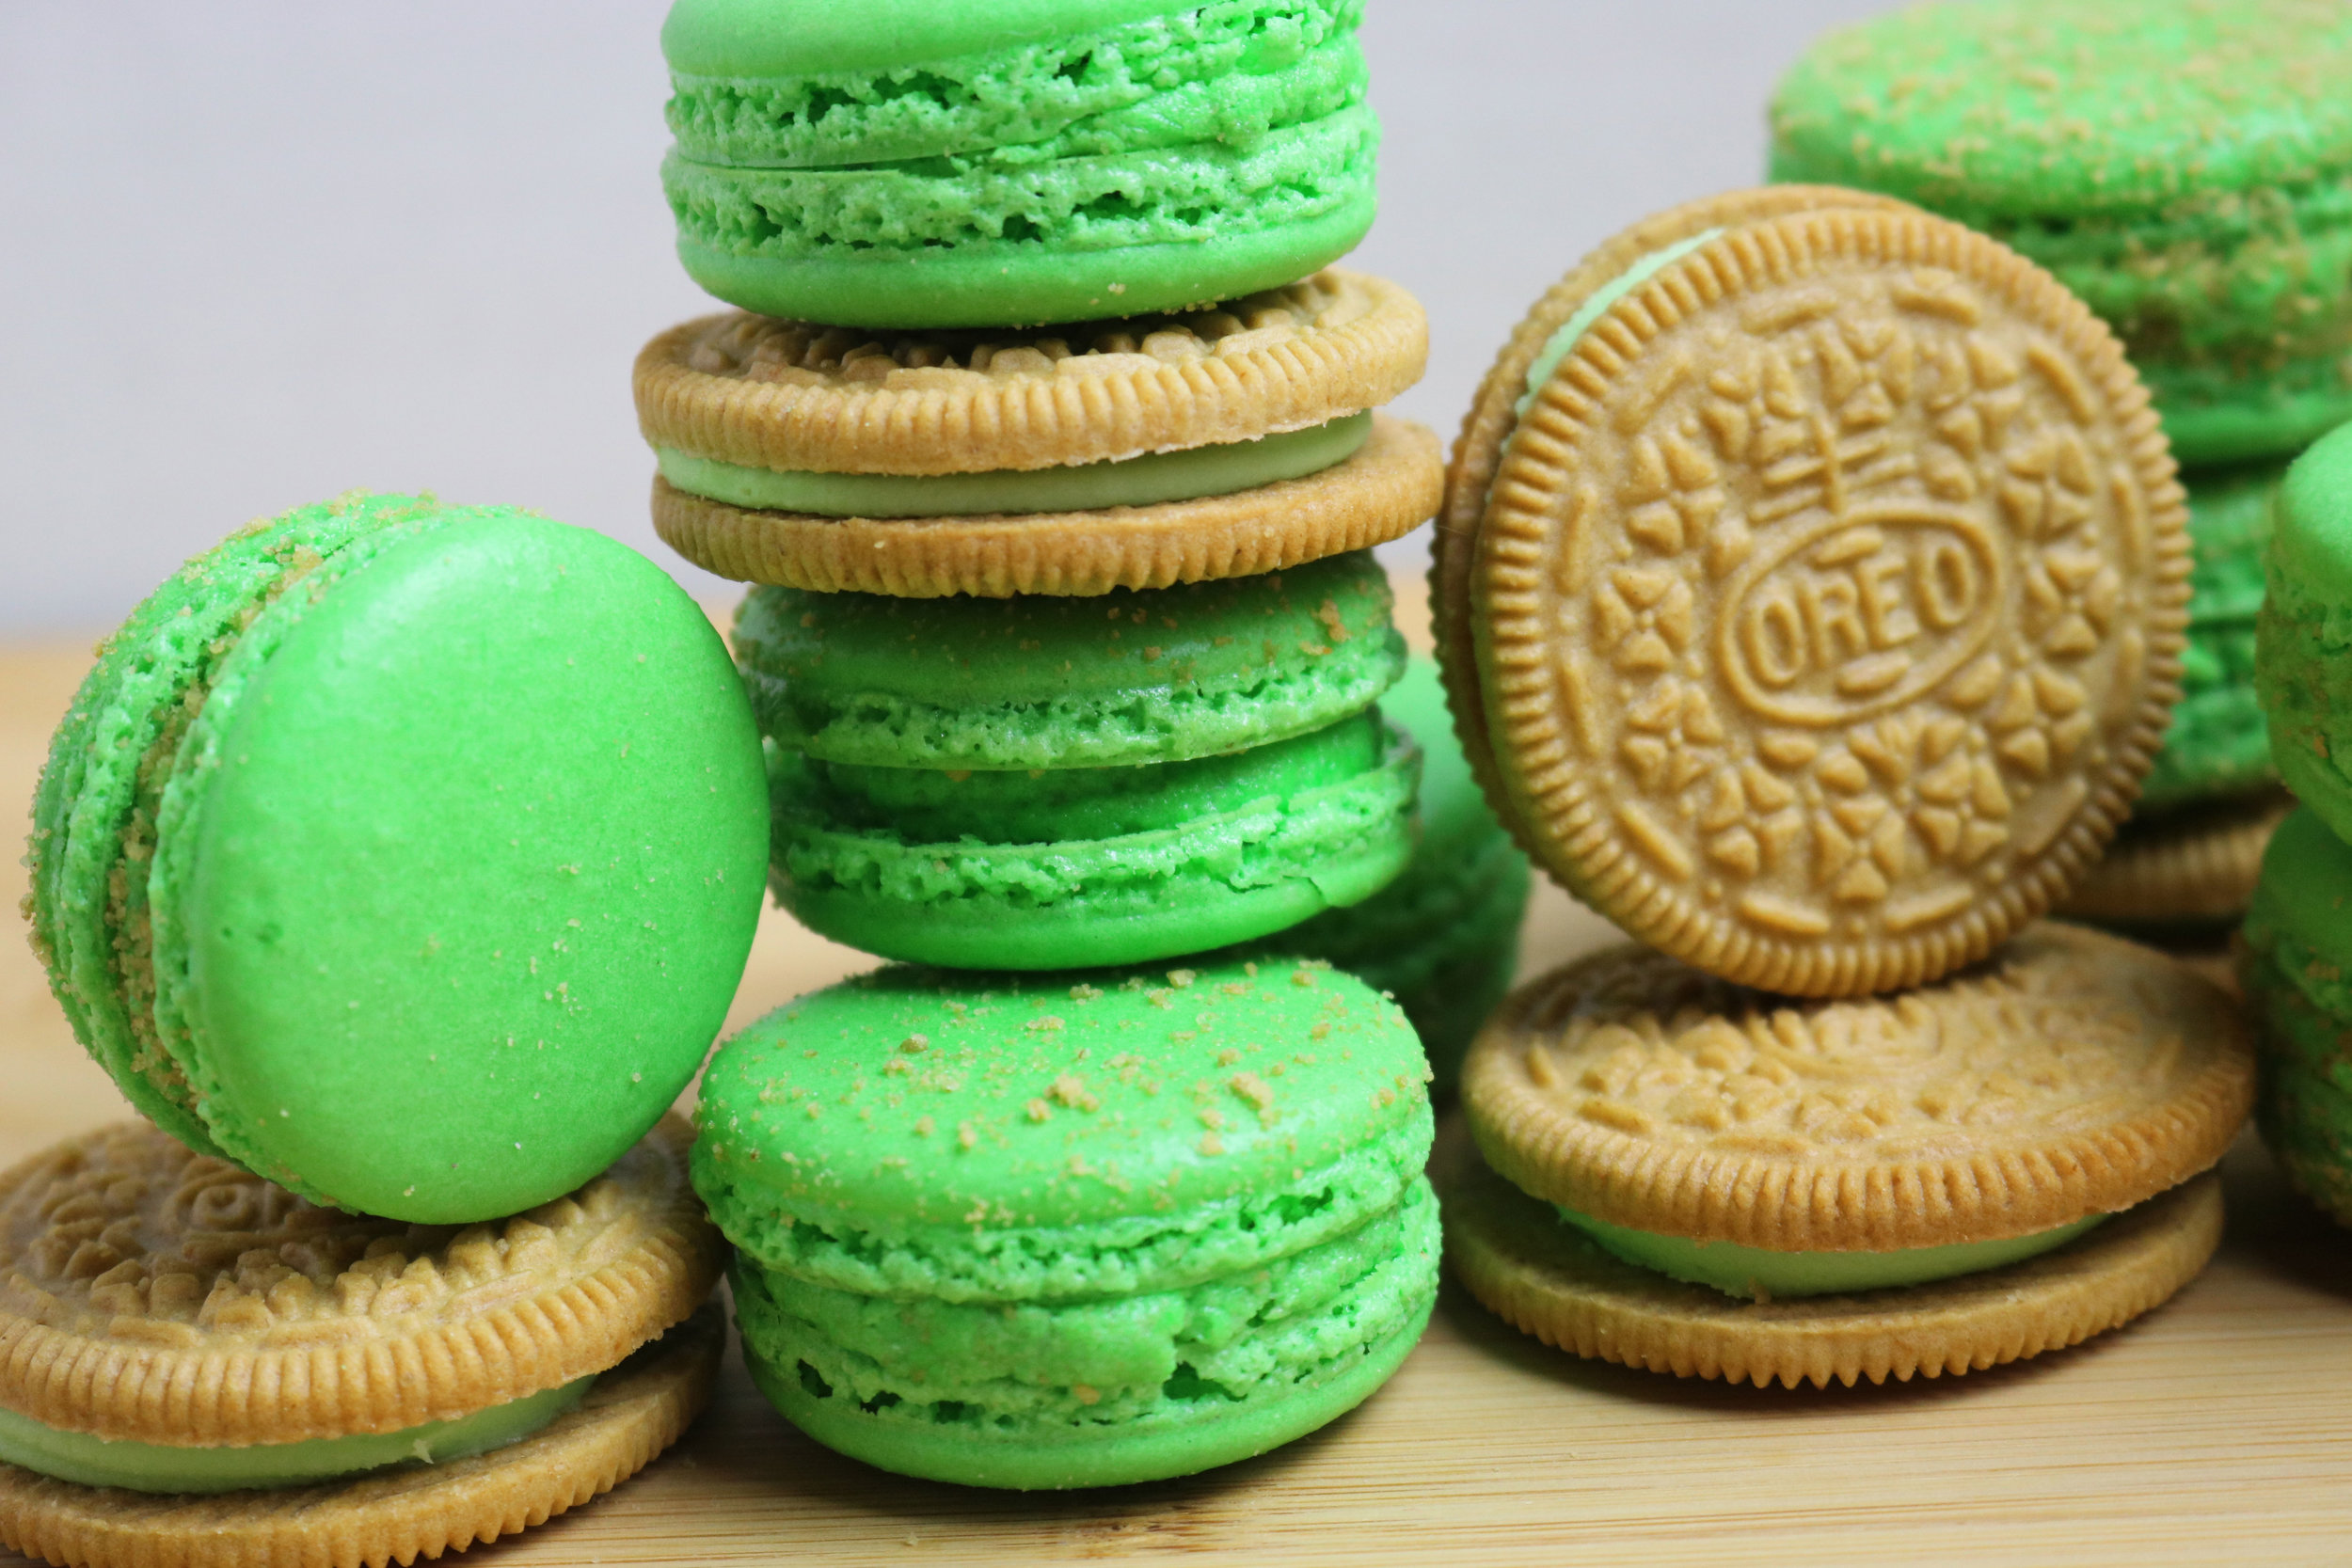 keylimemacaronsgroup2.jpg